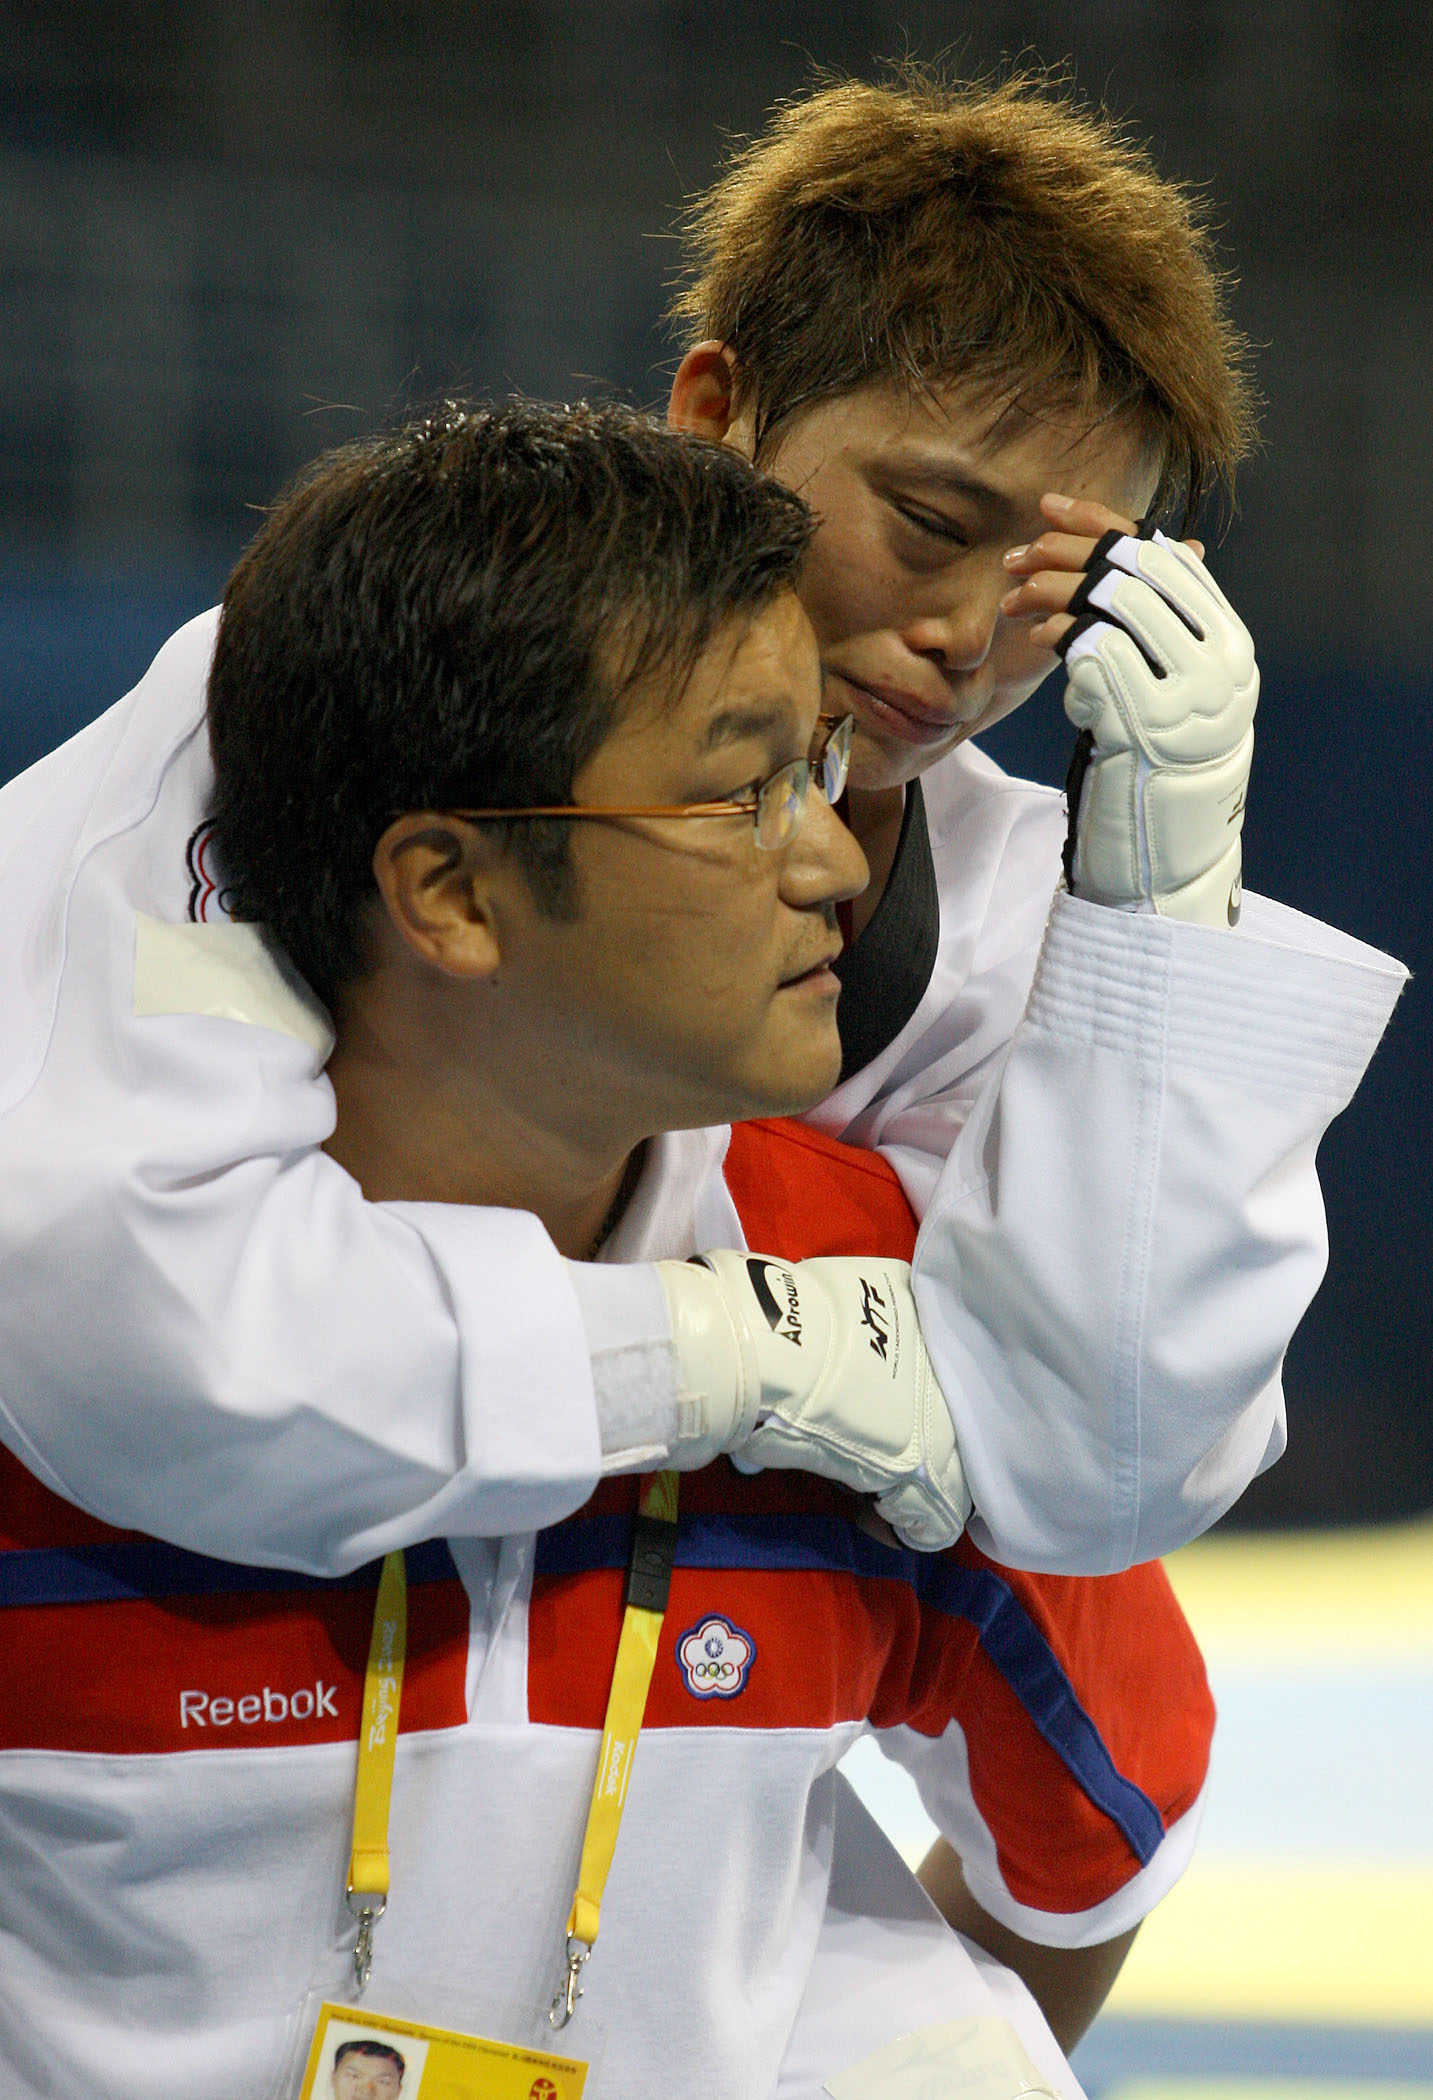 Su Li-wen is carried by her coach after losing her match.